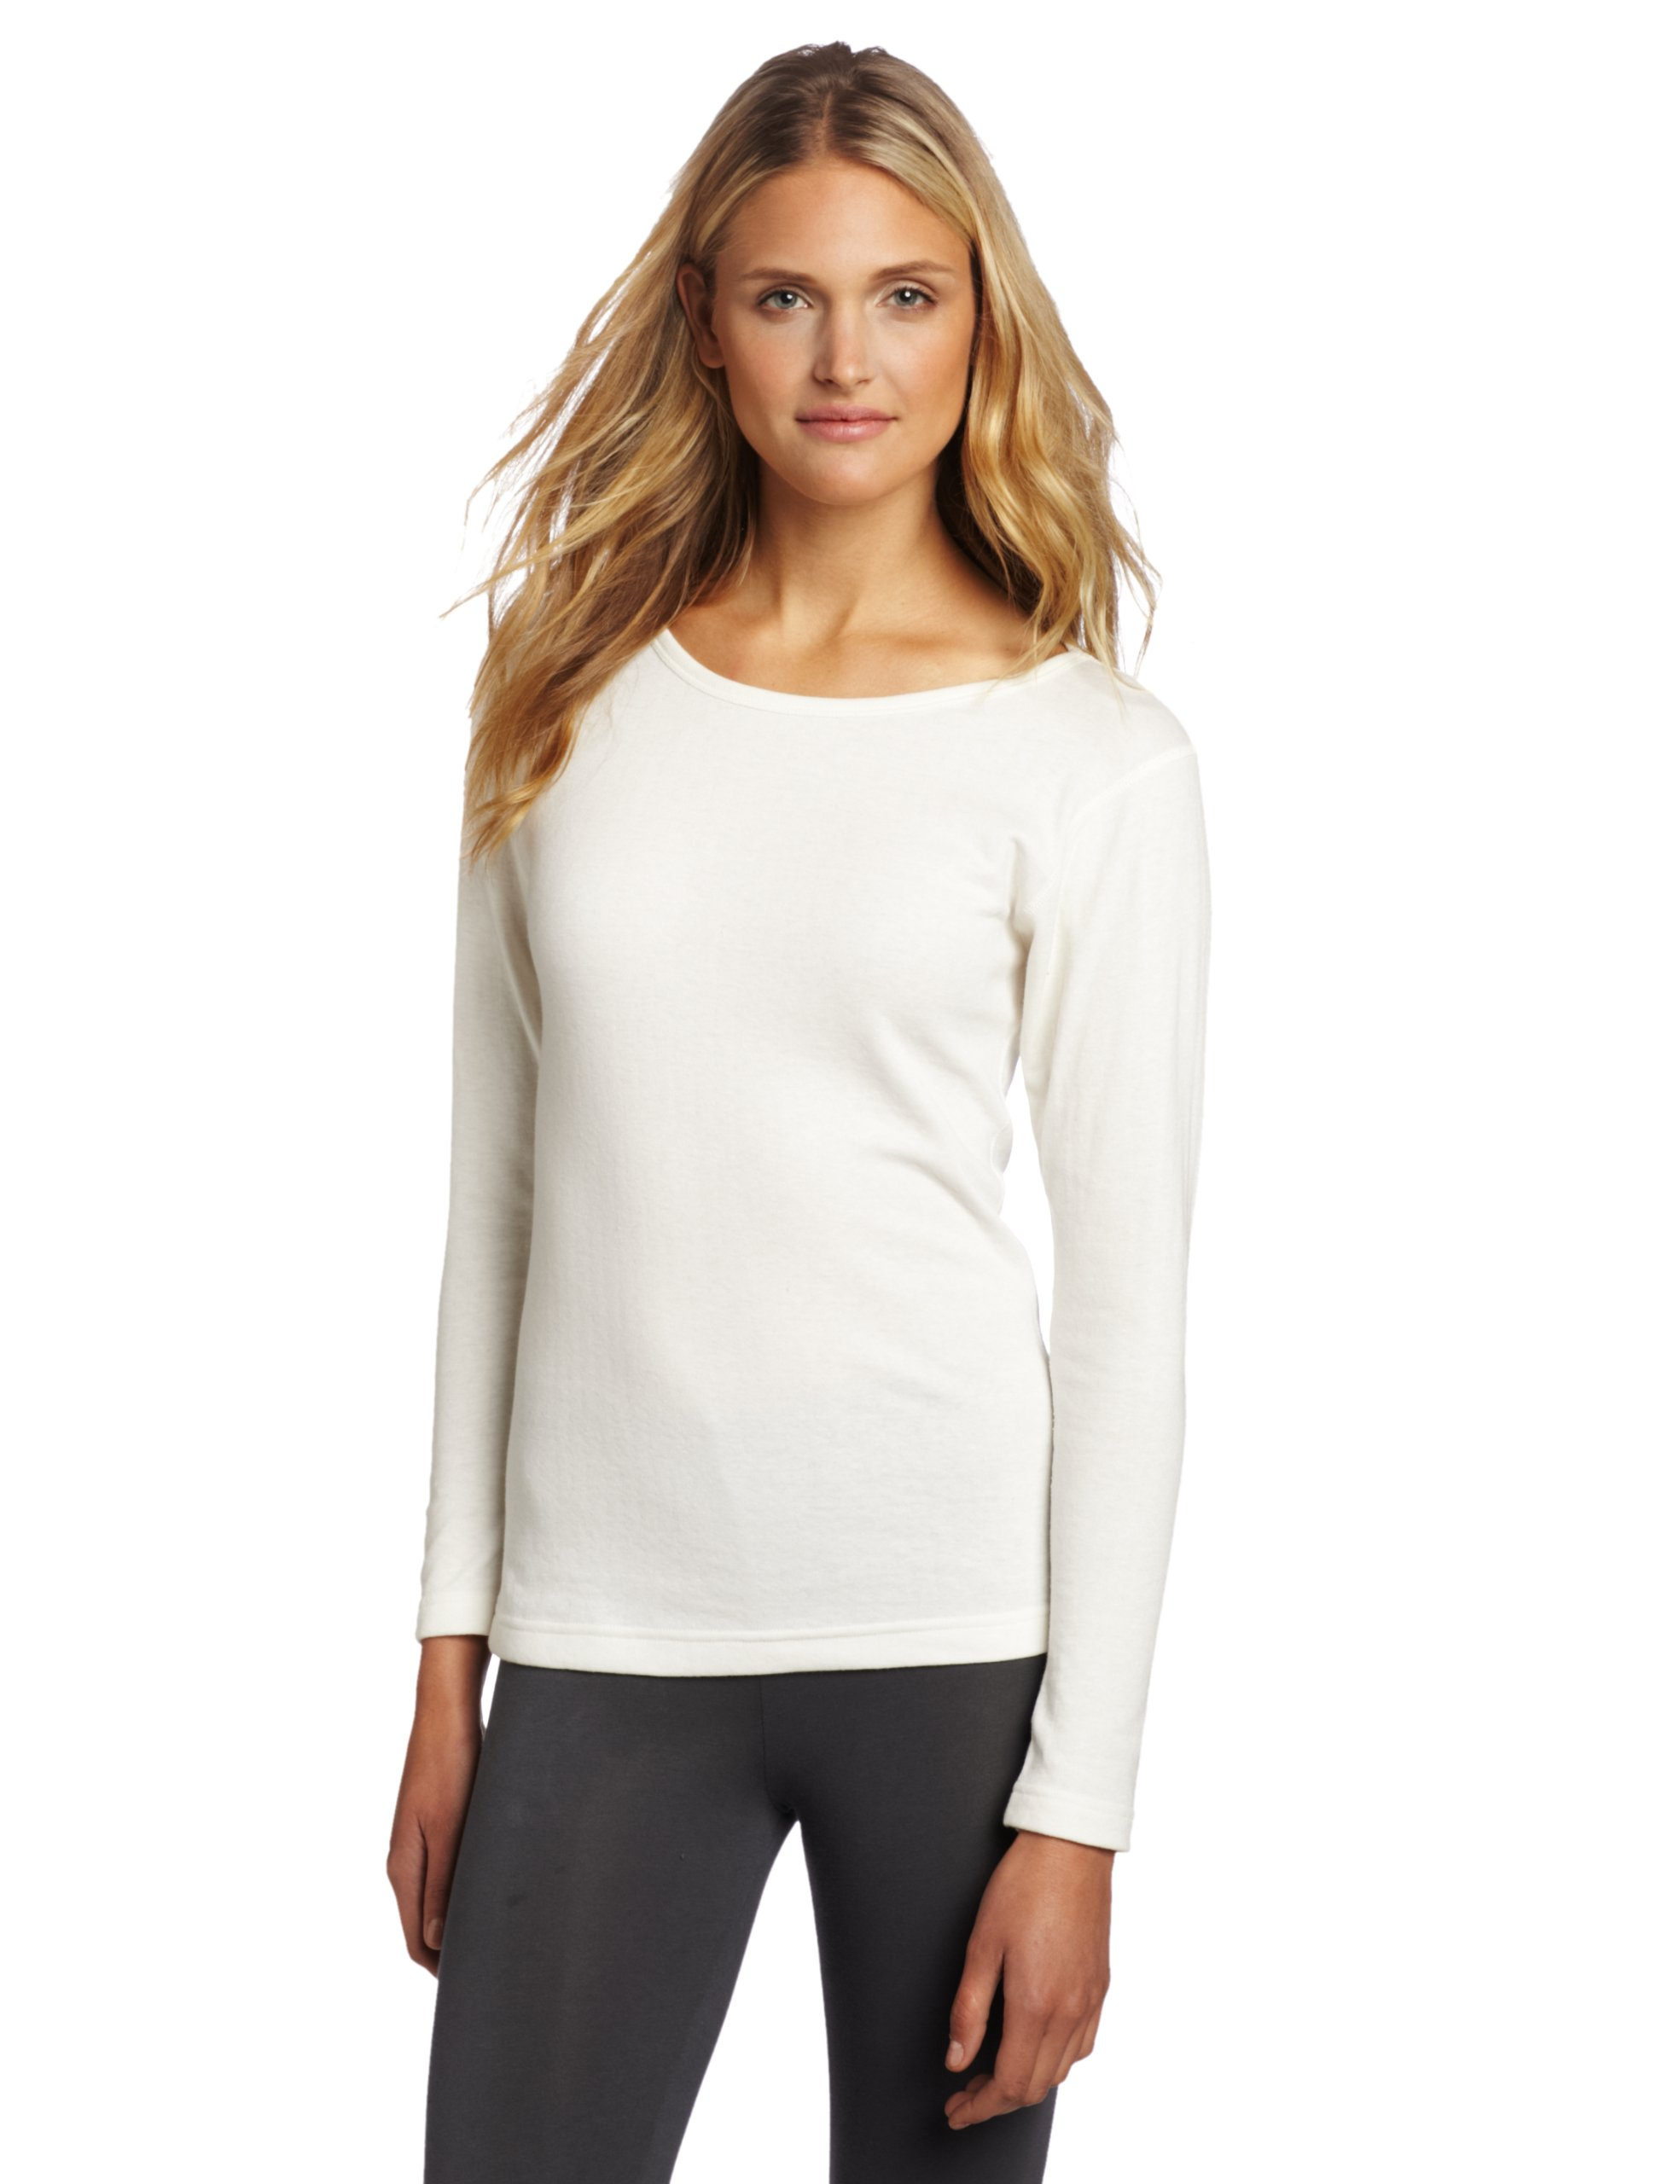 Duofold Women's Mid Weight Double Layer Thermal Shirt, Winter White, Large